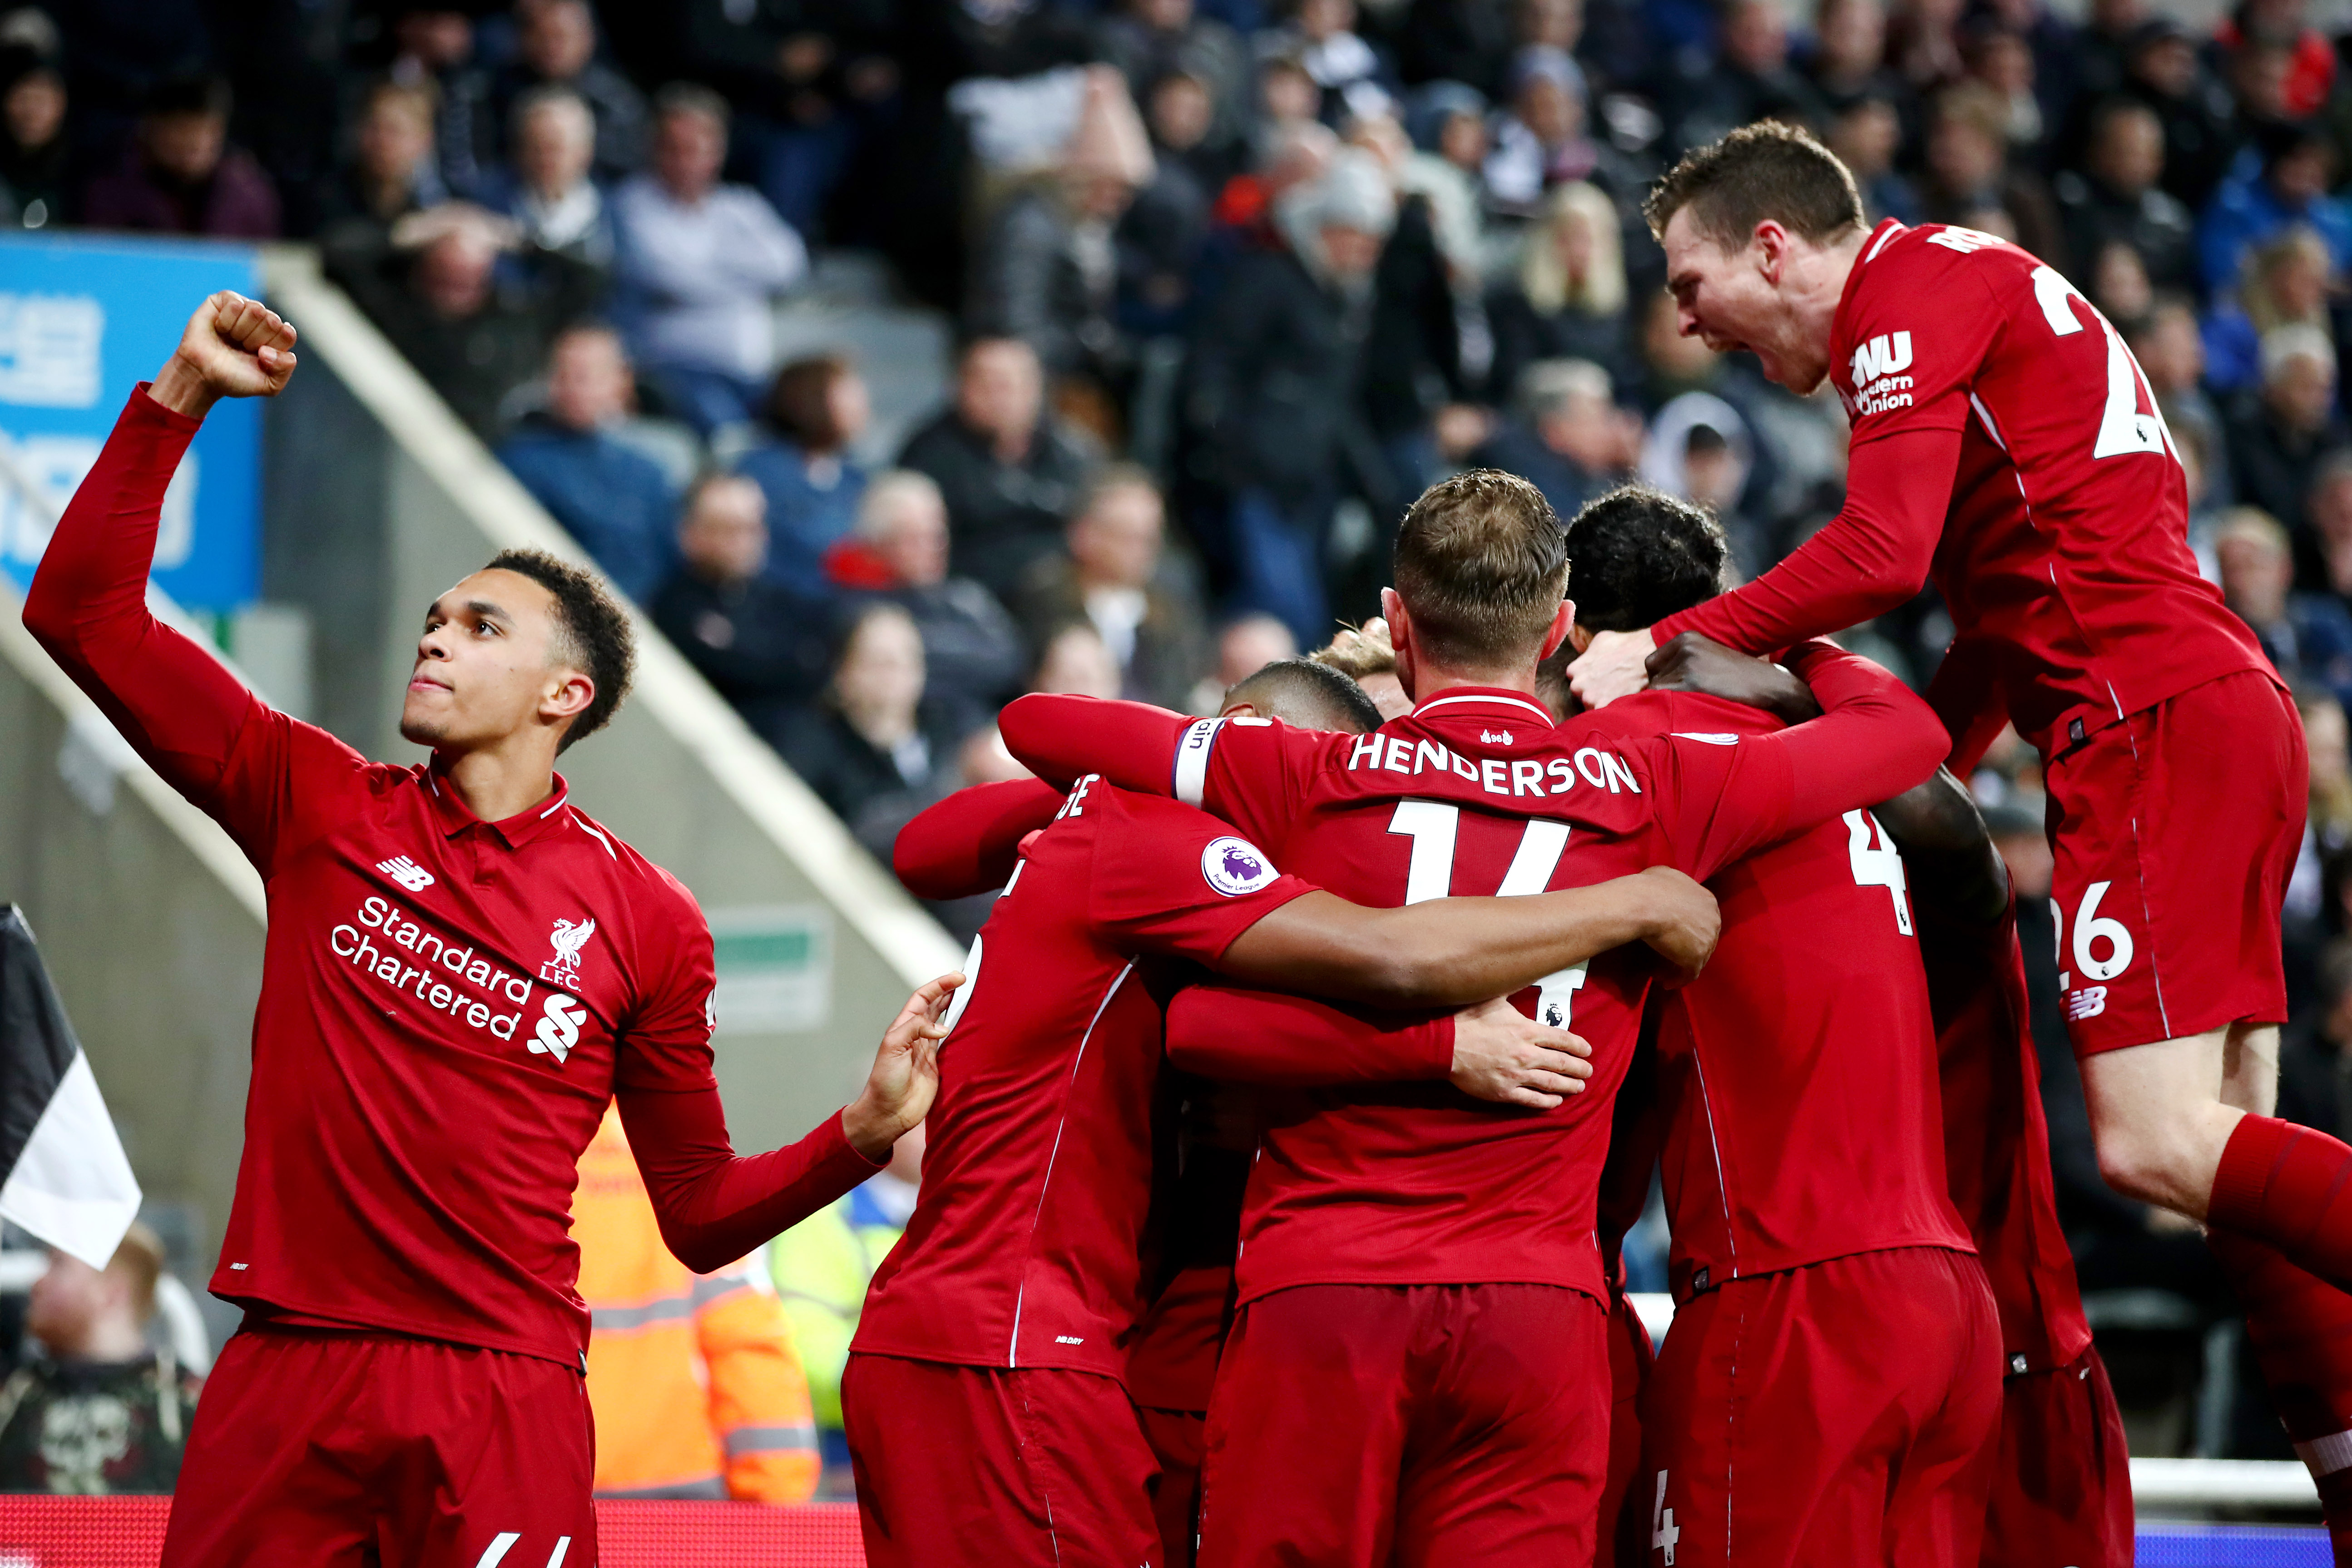 Digging Deeper Into Liverpool's Win Over Newcastle